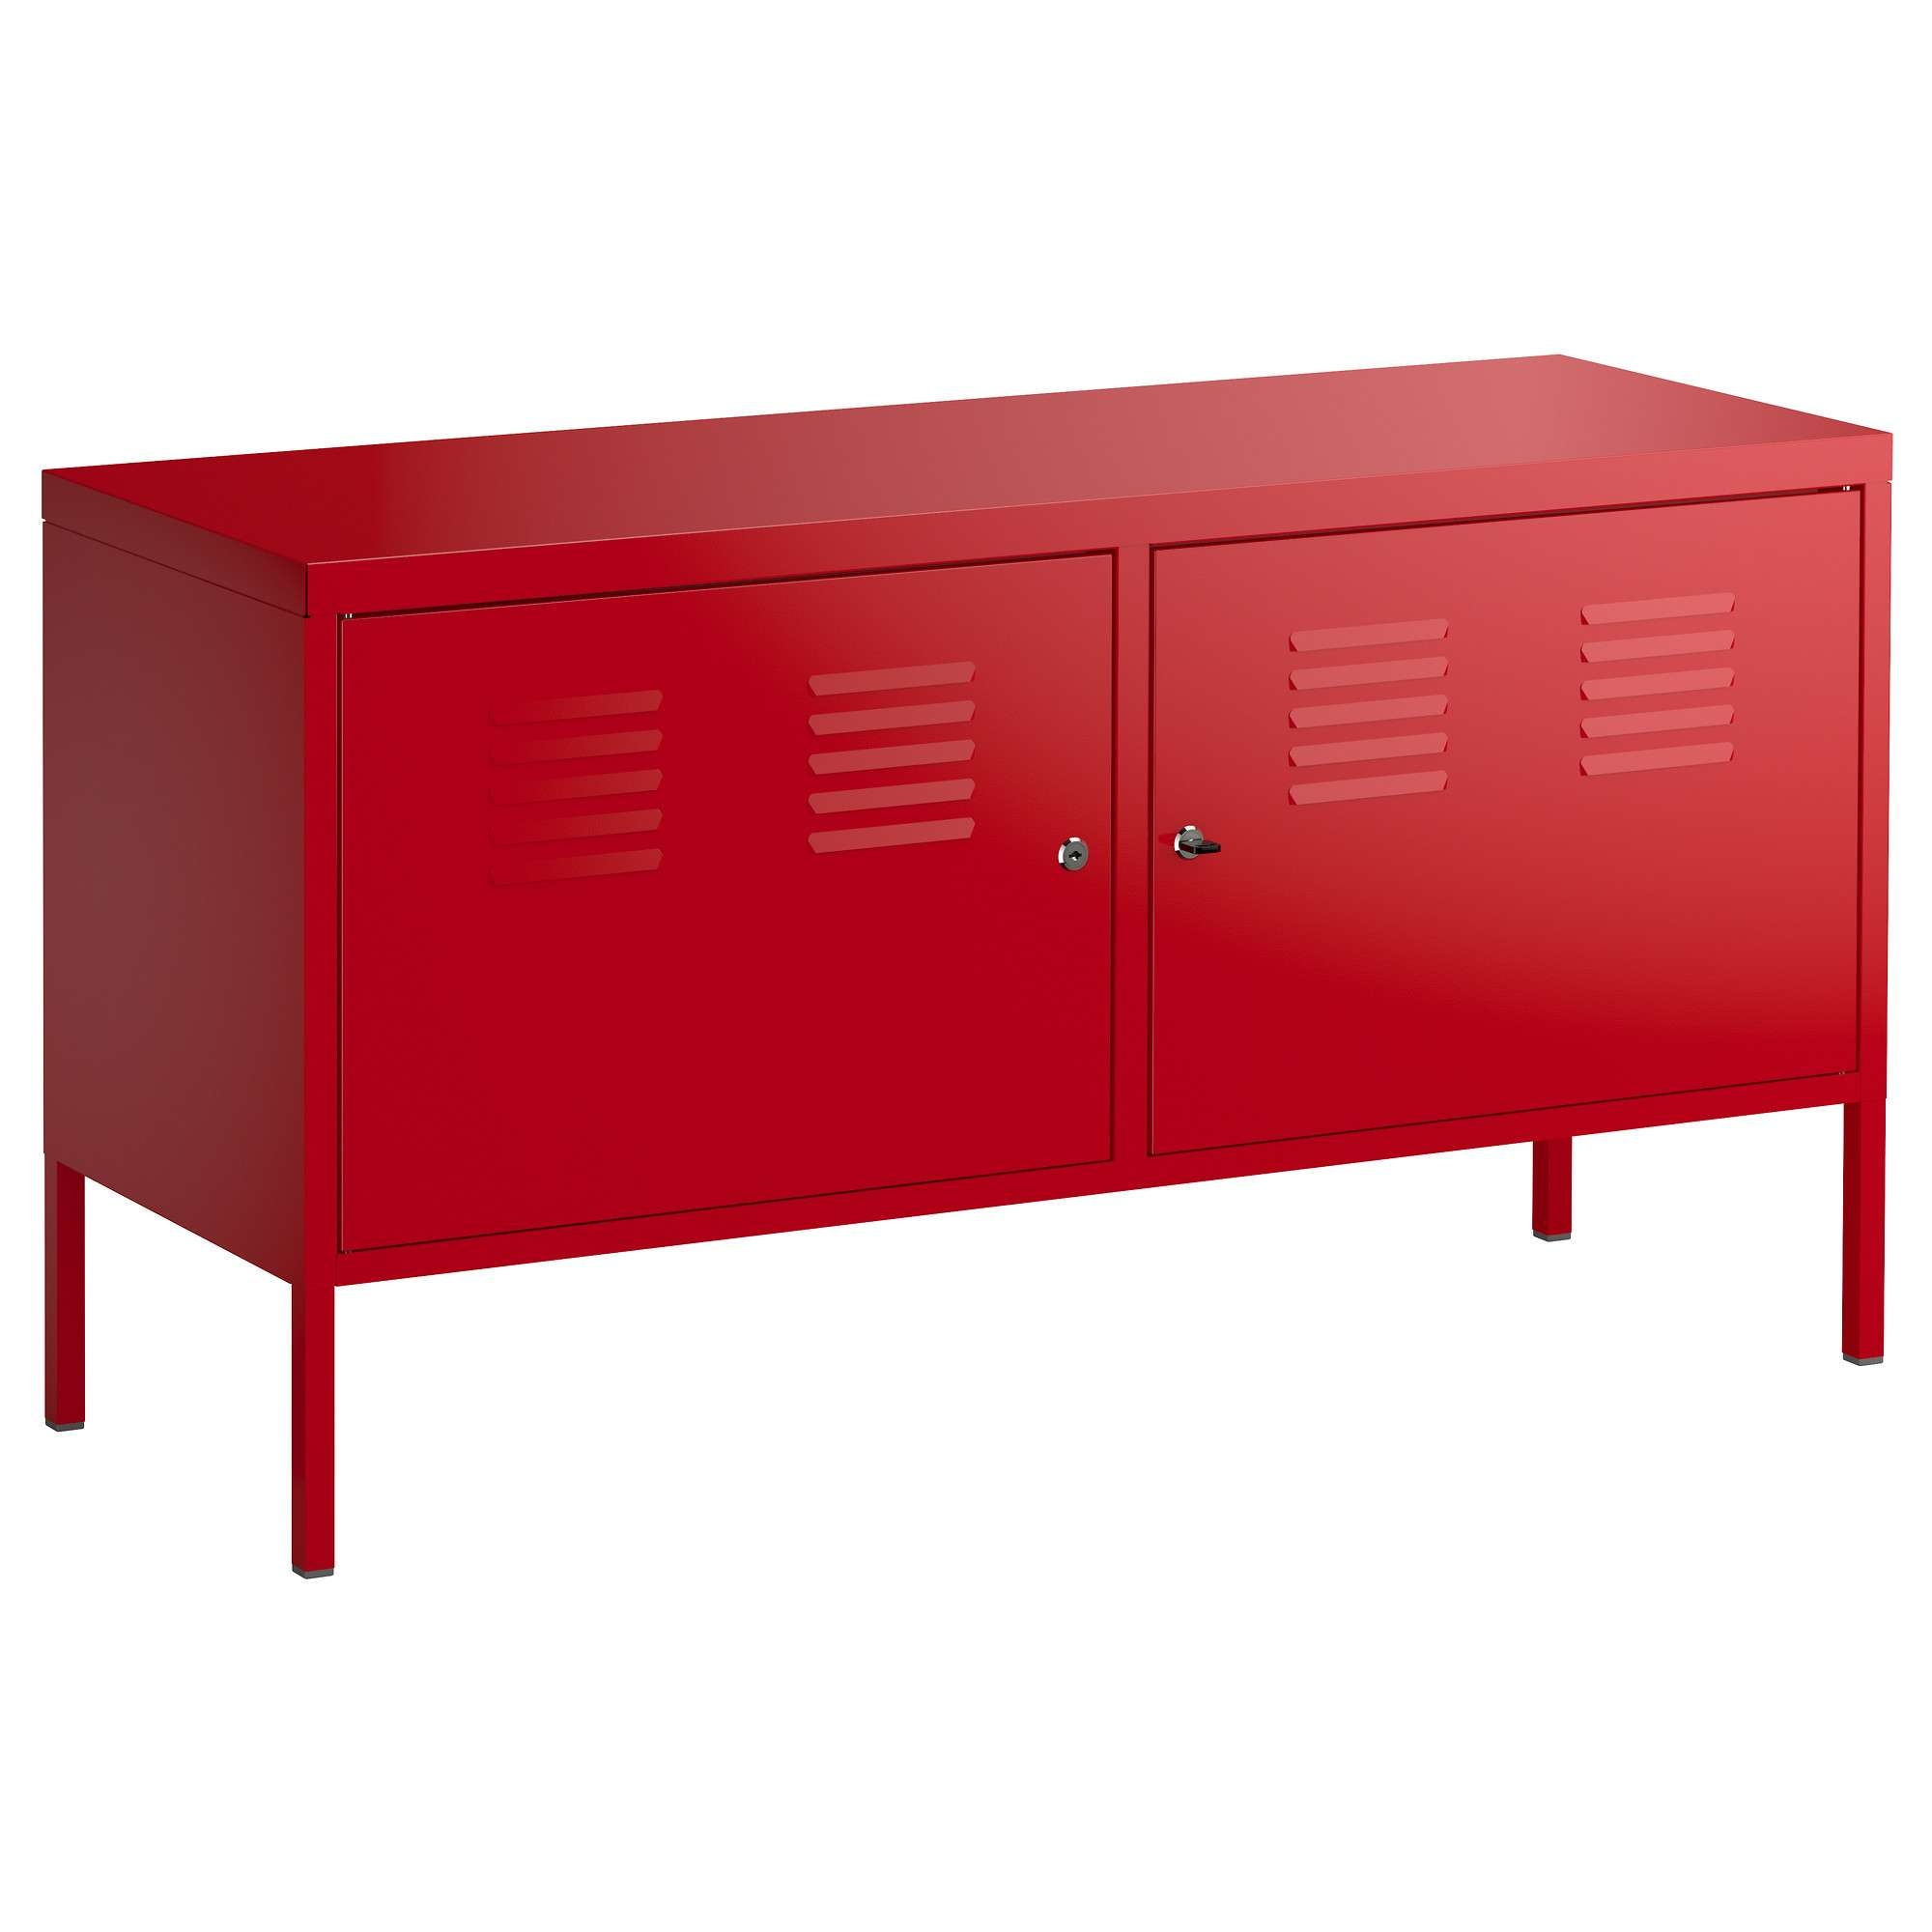 Ikea Ps Cabinet – Red – Ikea Pertaining To Red Tv Cabinets (View 7 of 20)